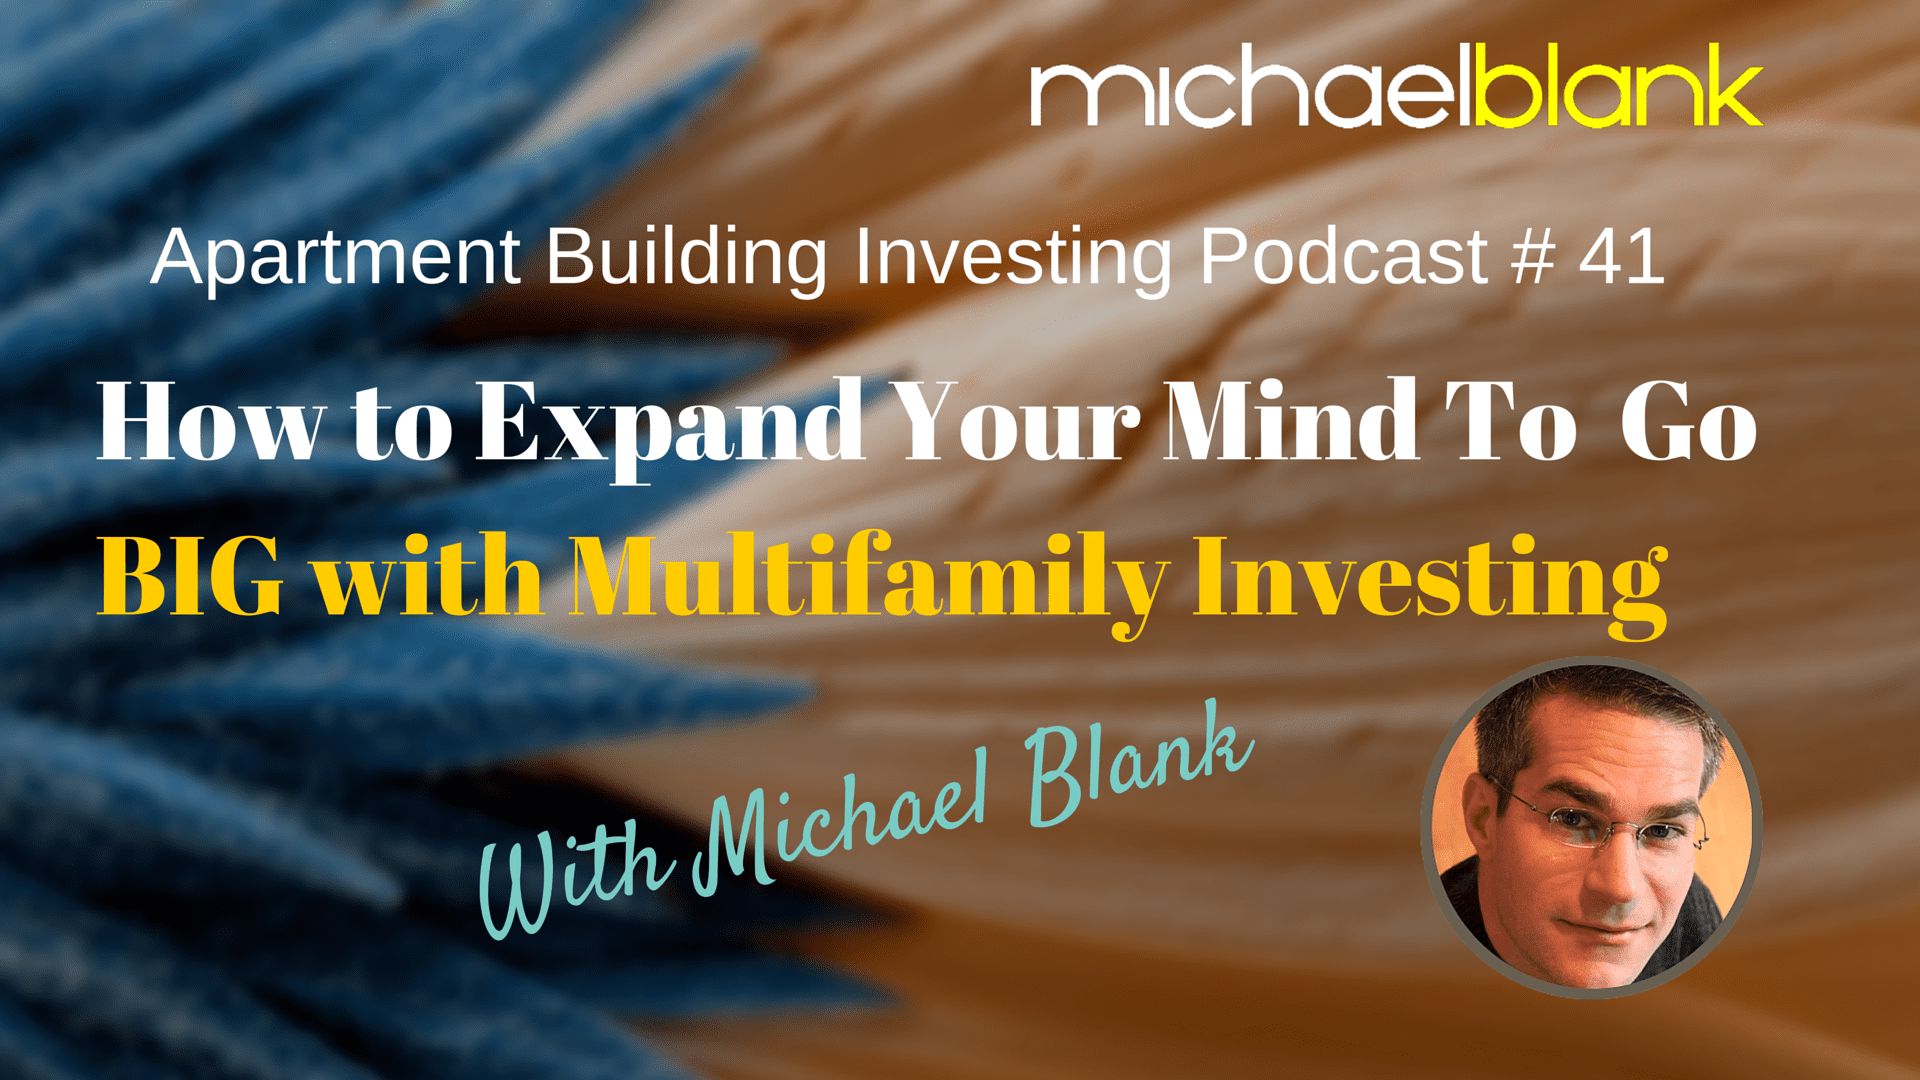 MB 041: How to Expand Your Mind To Go BIG with Multifamily Investing